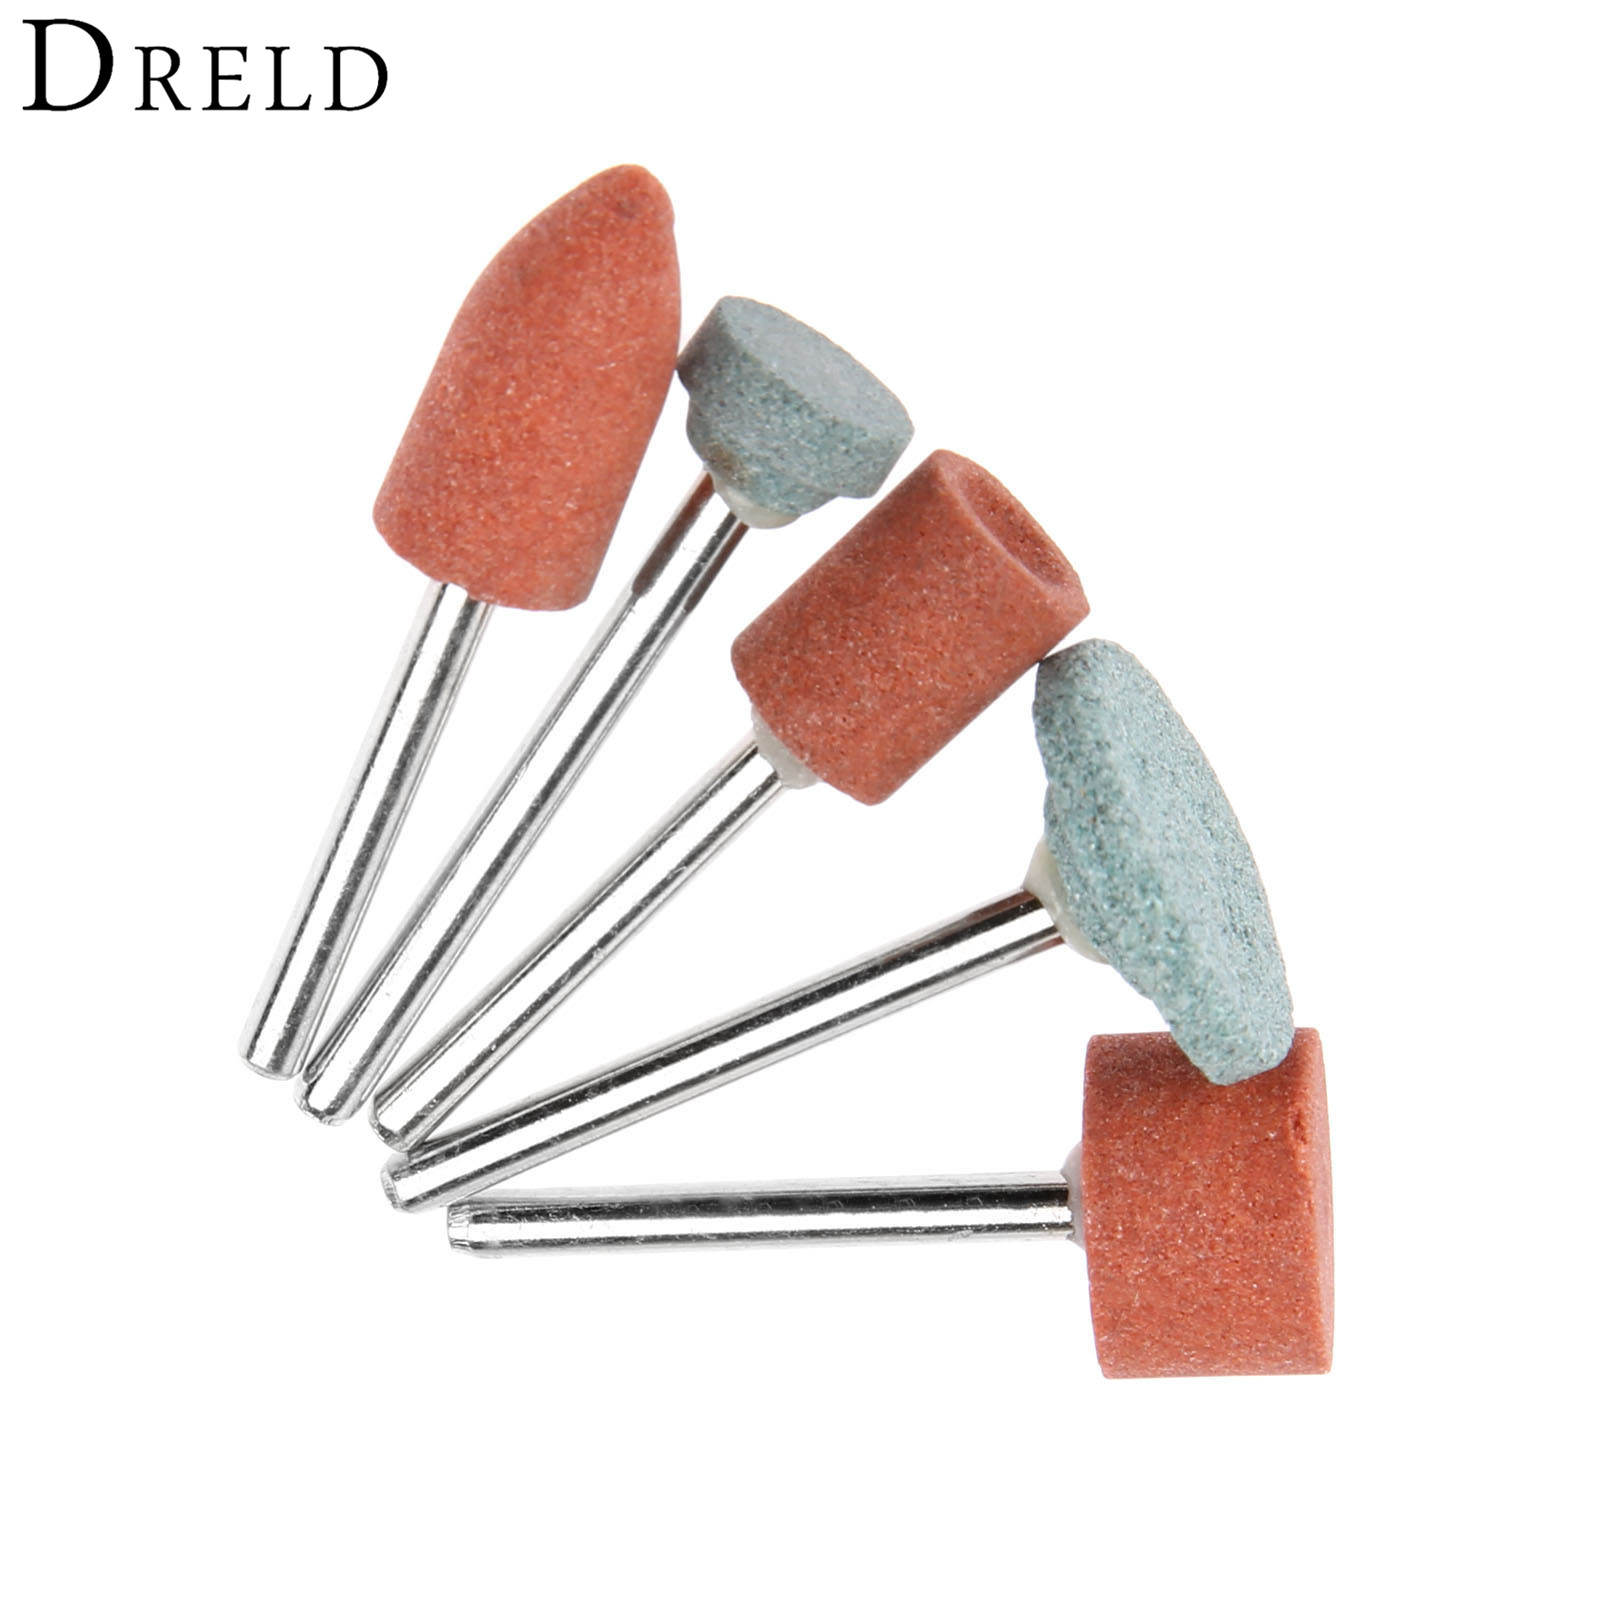 DRELD 5Pcs Dremel Accessories 3mm Shank Grinding Wheel Head For DIY Grinding/Polishing Wood/Mental/Mould Electric Mini Grinder